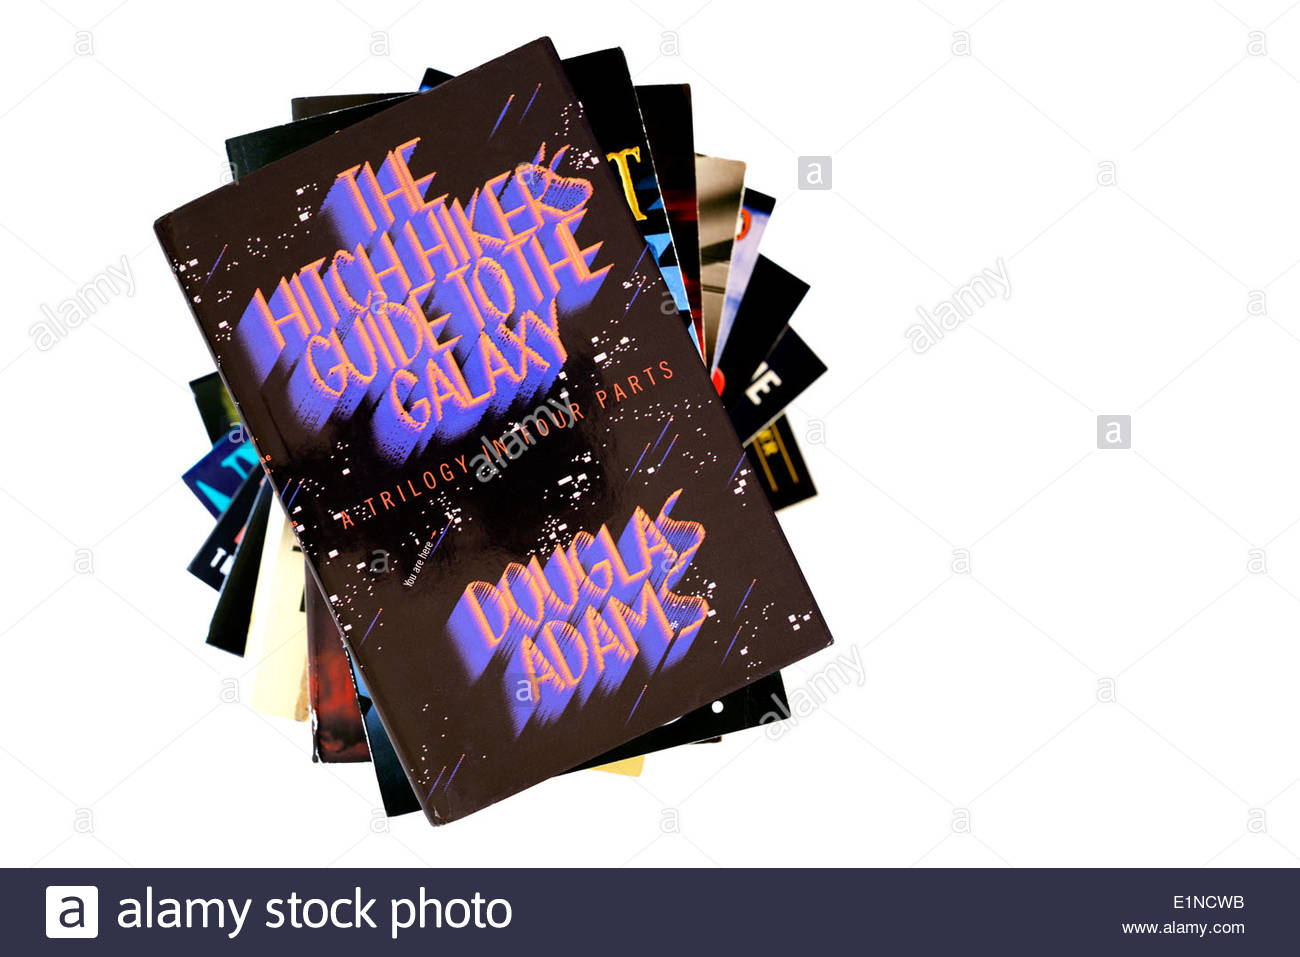 Douglas Adams hardback title The Hitchhicker's Guide To The Galaxy, stacked used books, England - Stock Image